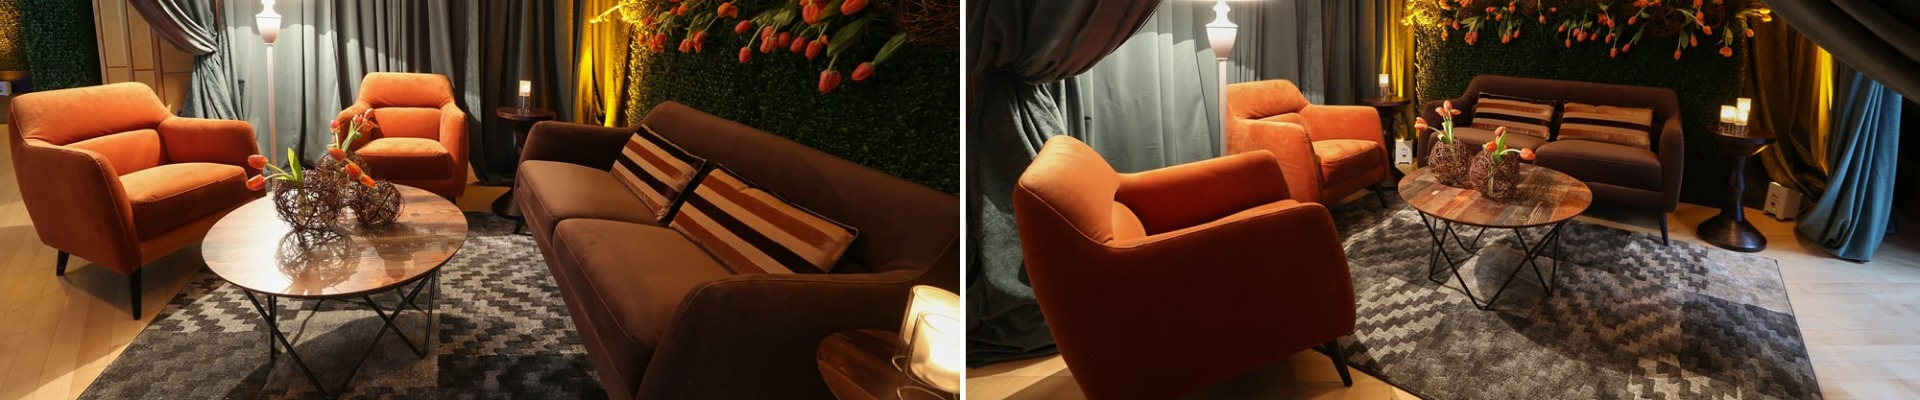 lounge with spice orange and brown soft seating